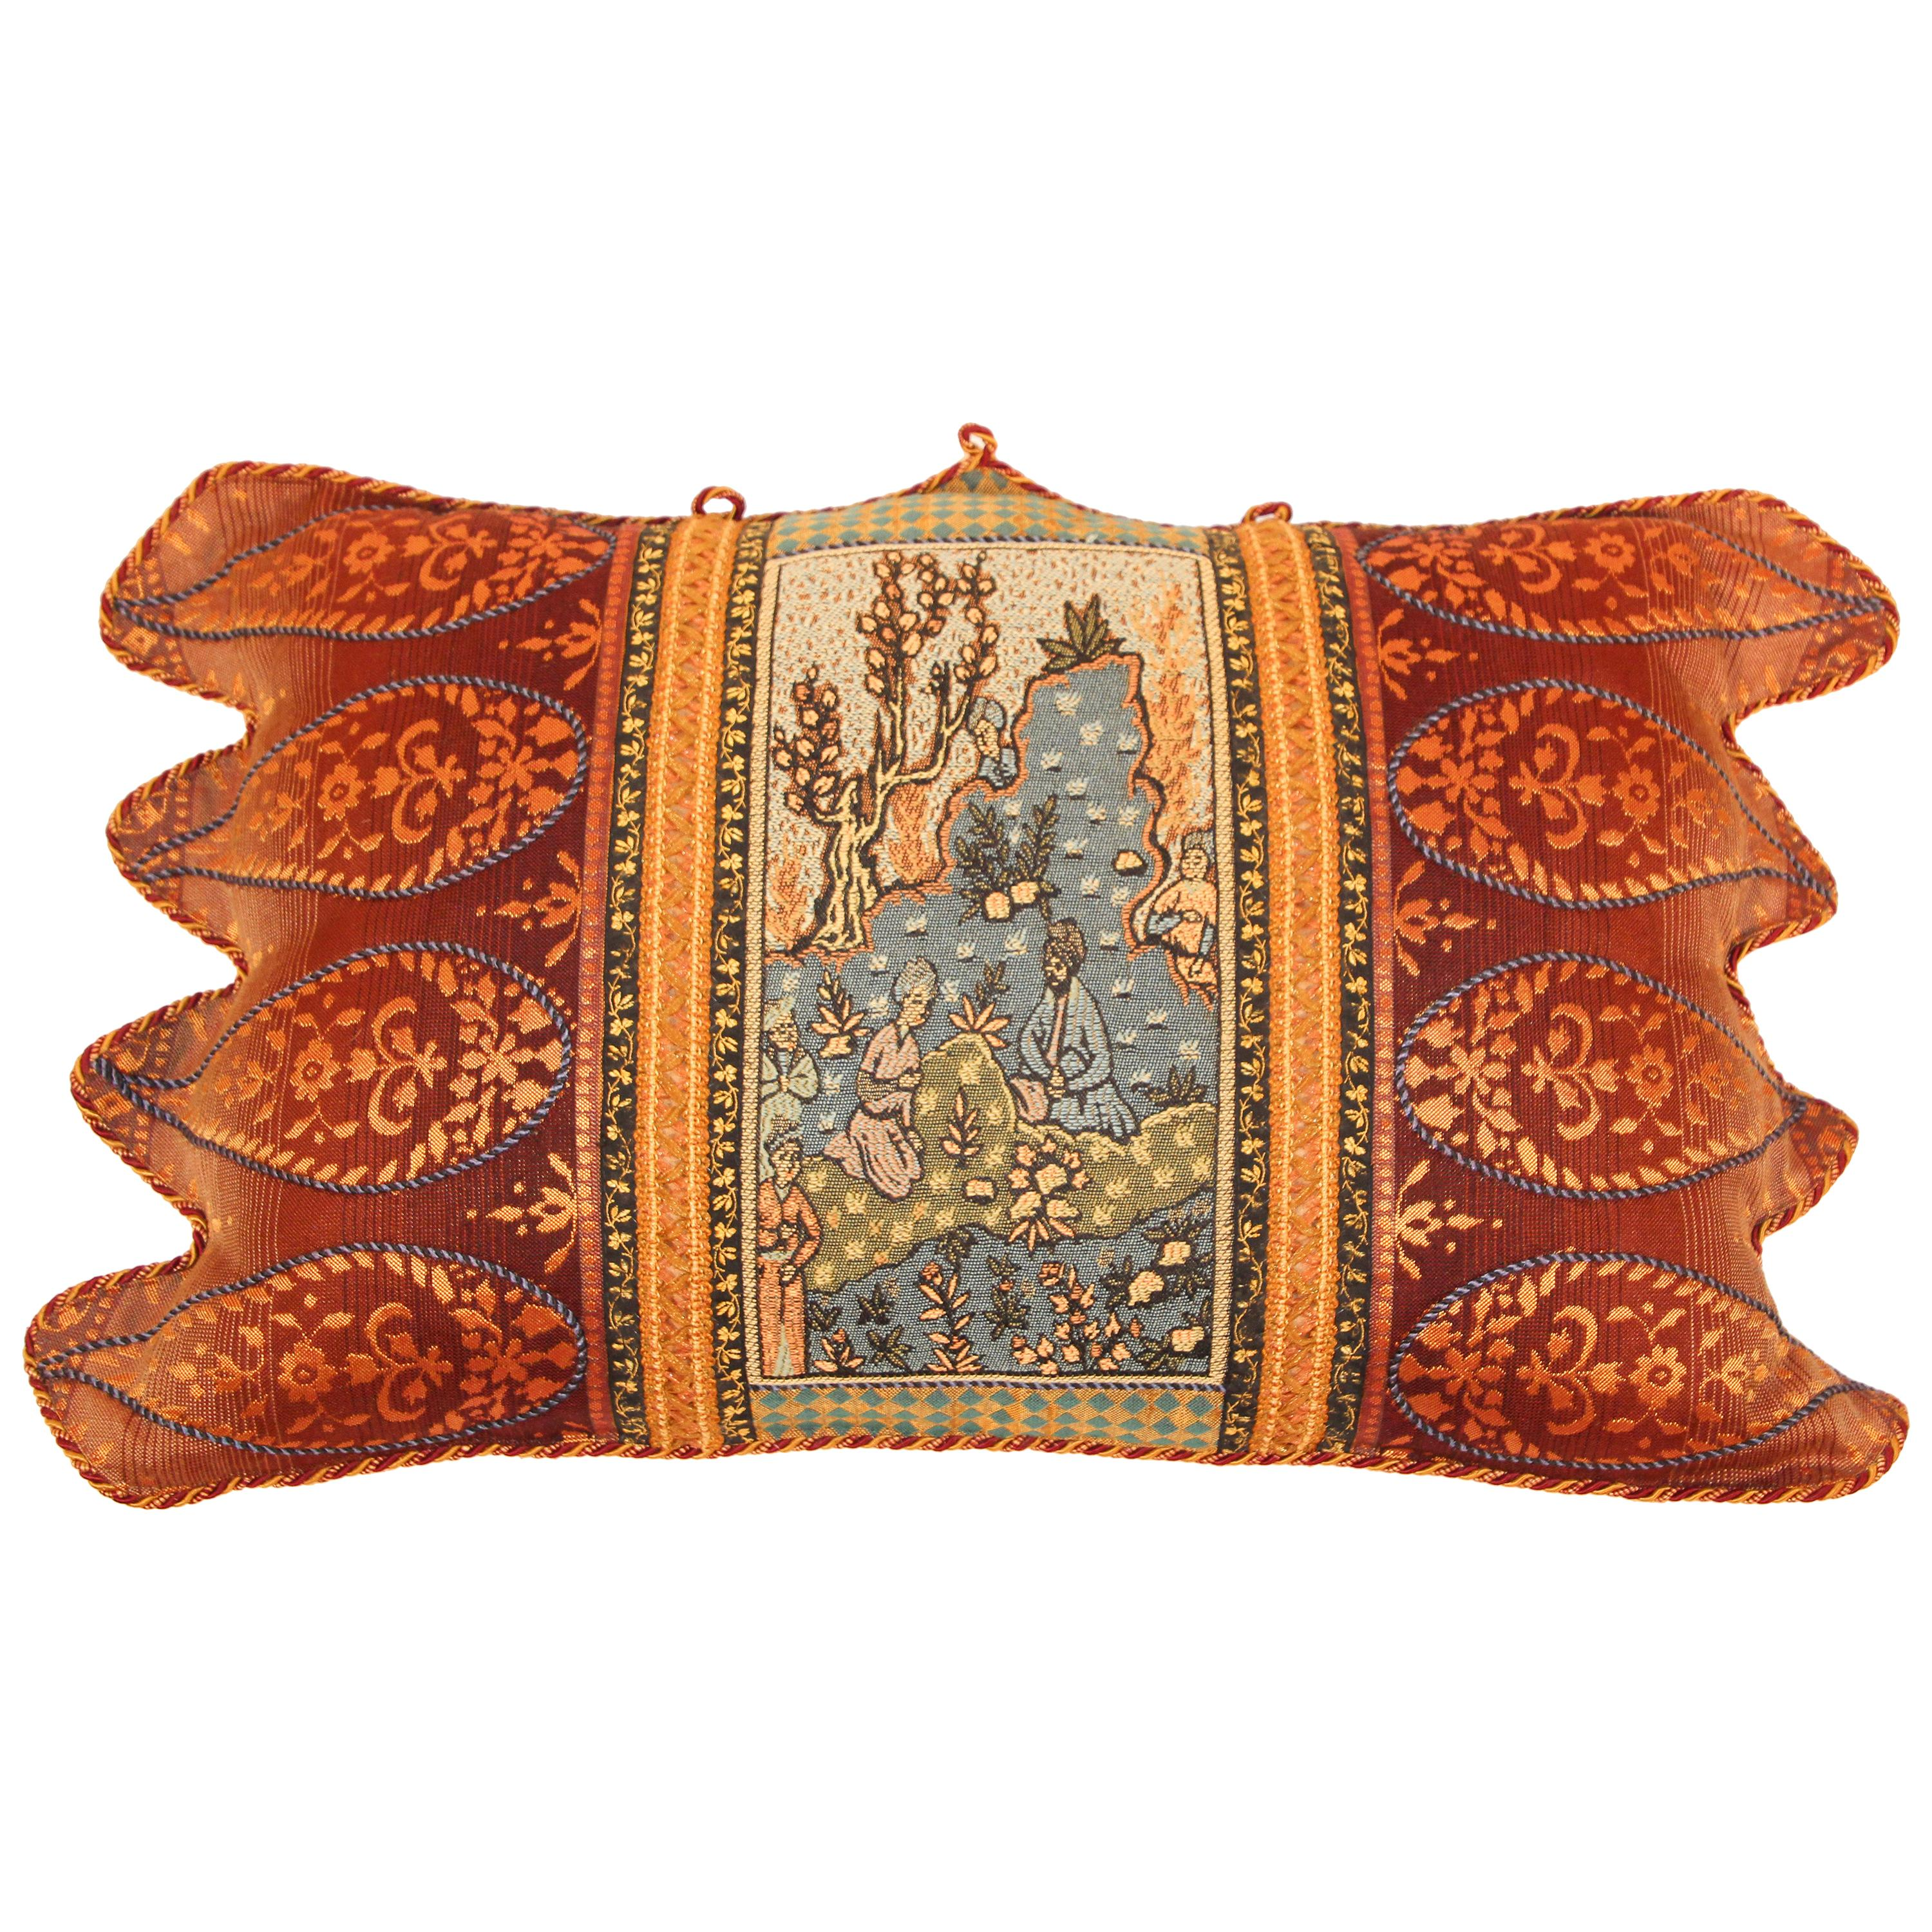 Middle Eastern Decorative Throw Pillow